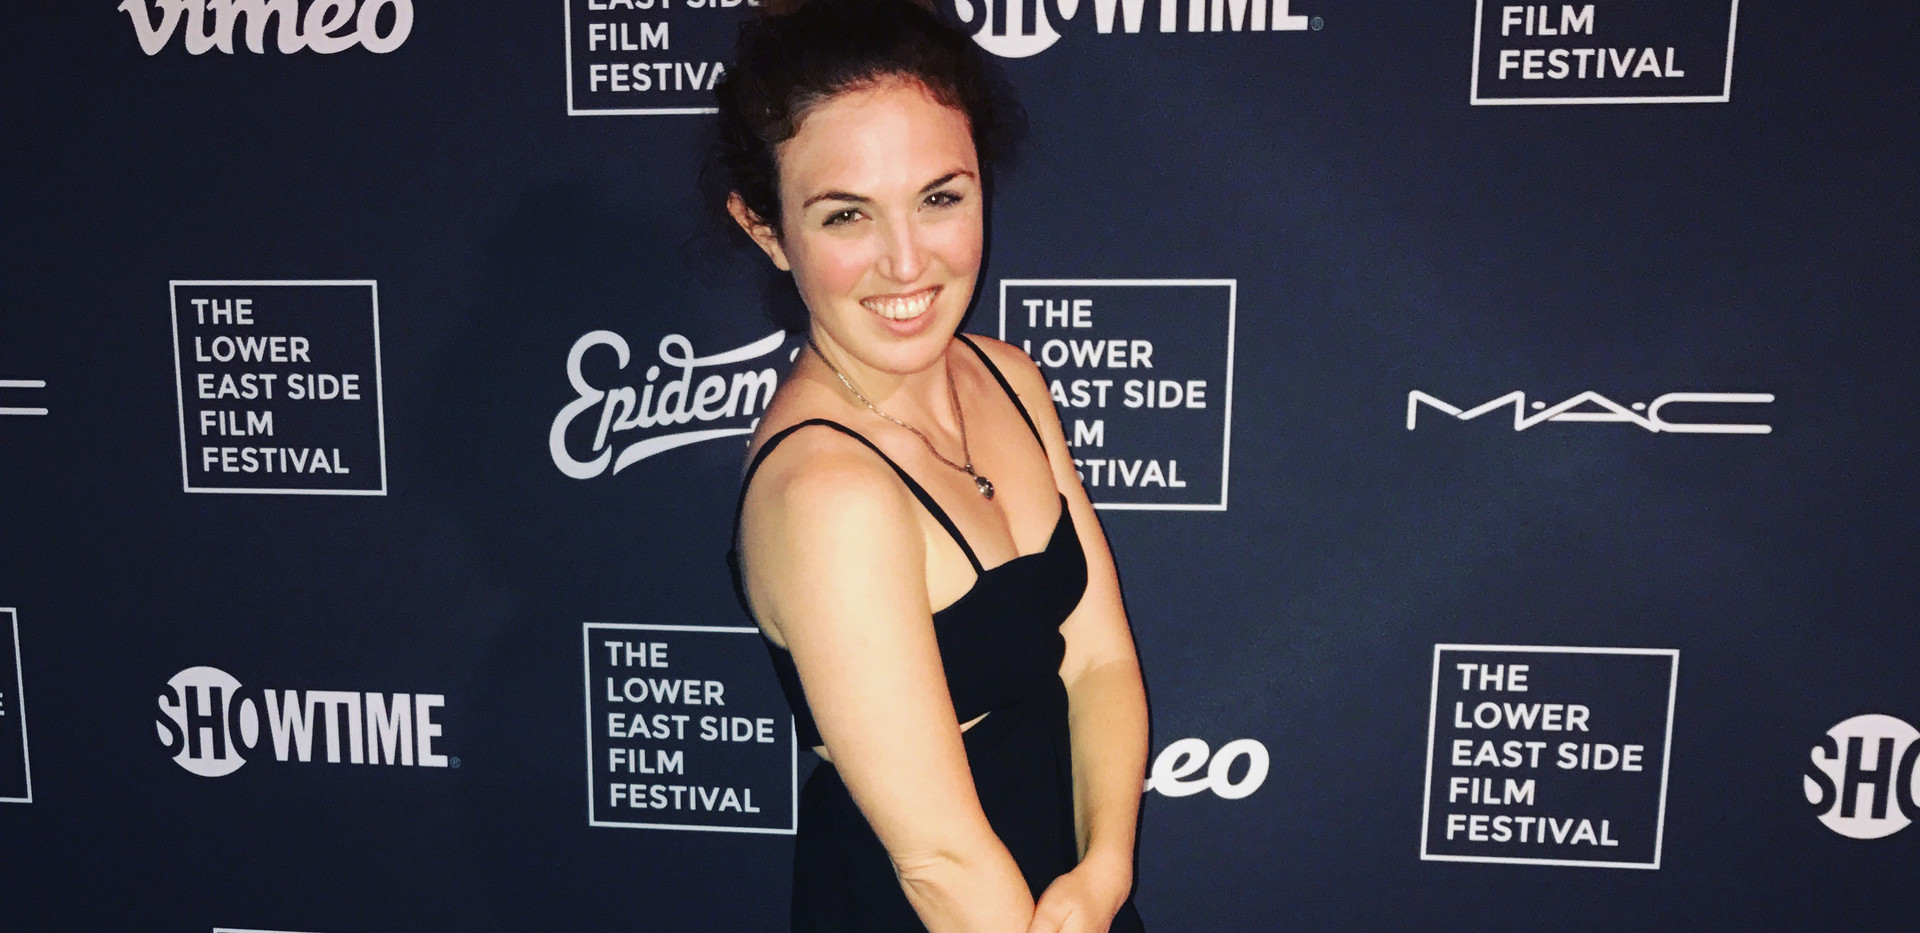 On the red carpet of the Lower East Side Film Festival